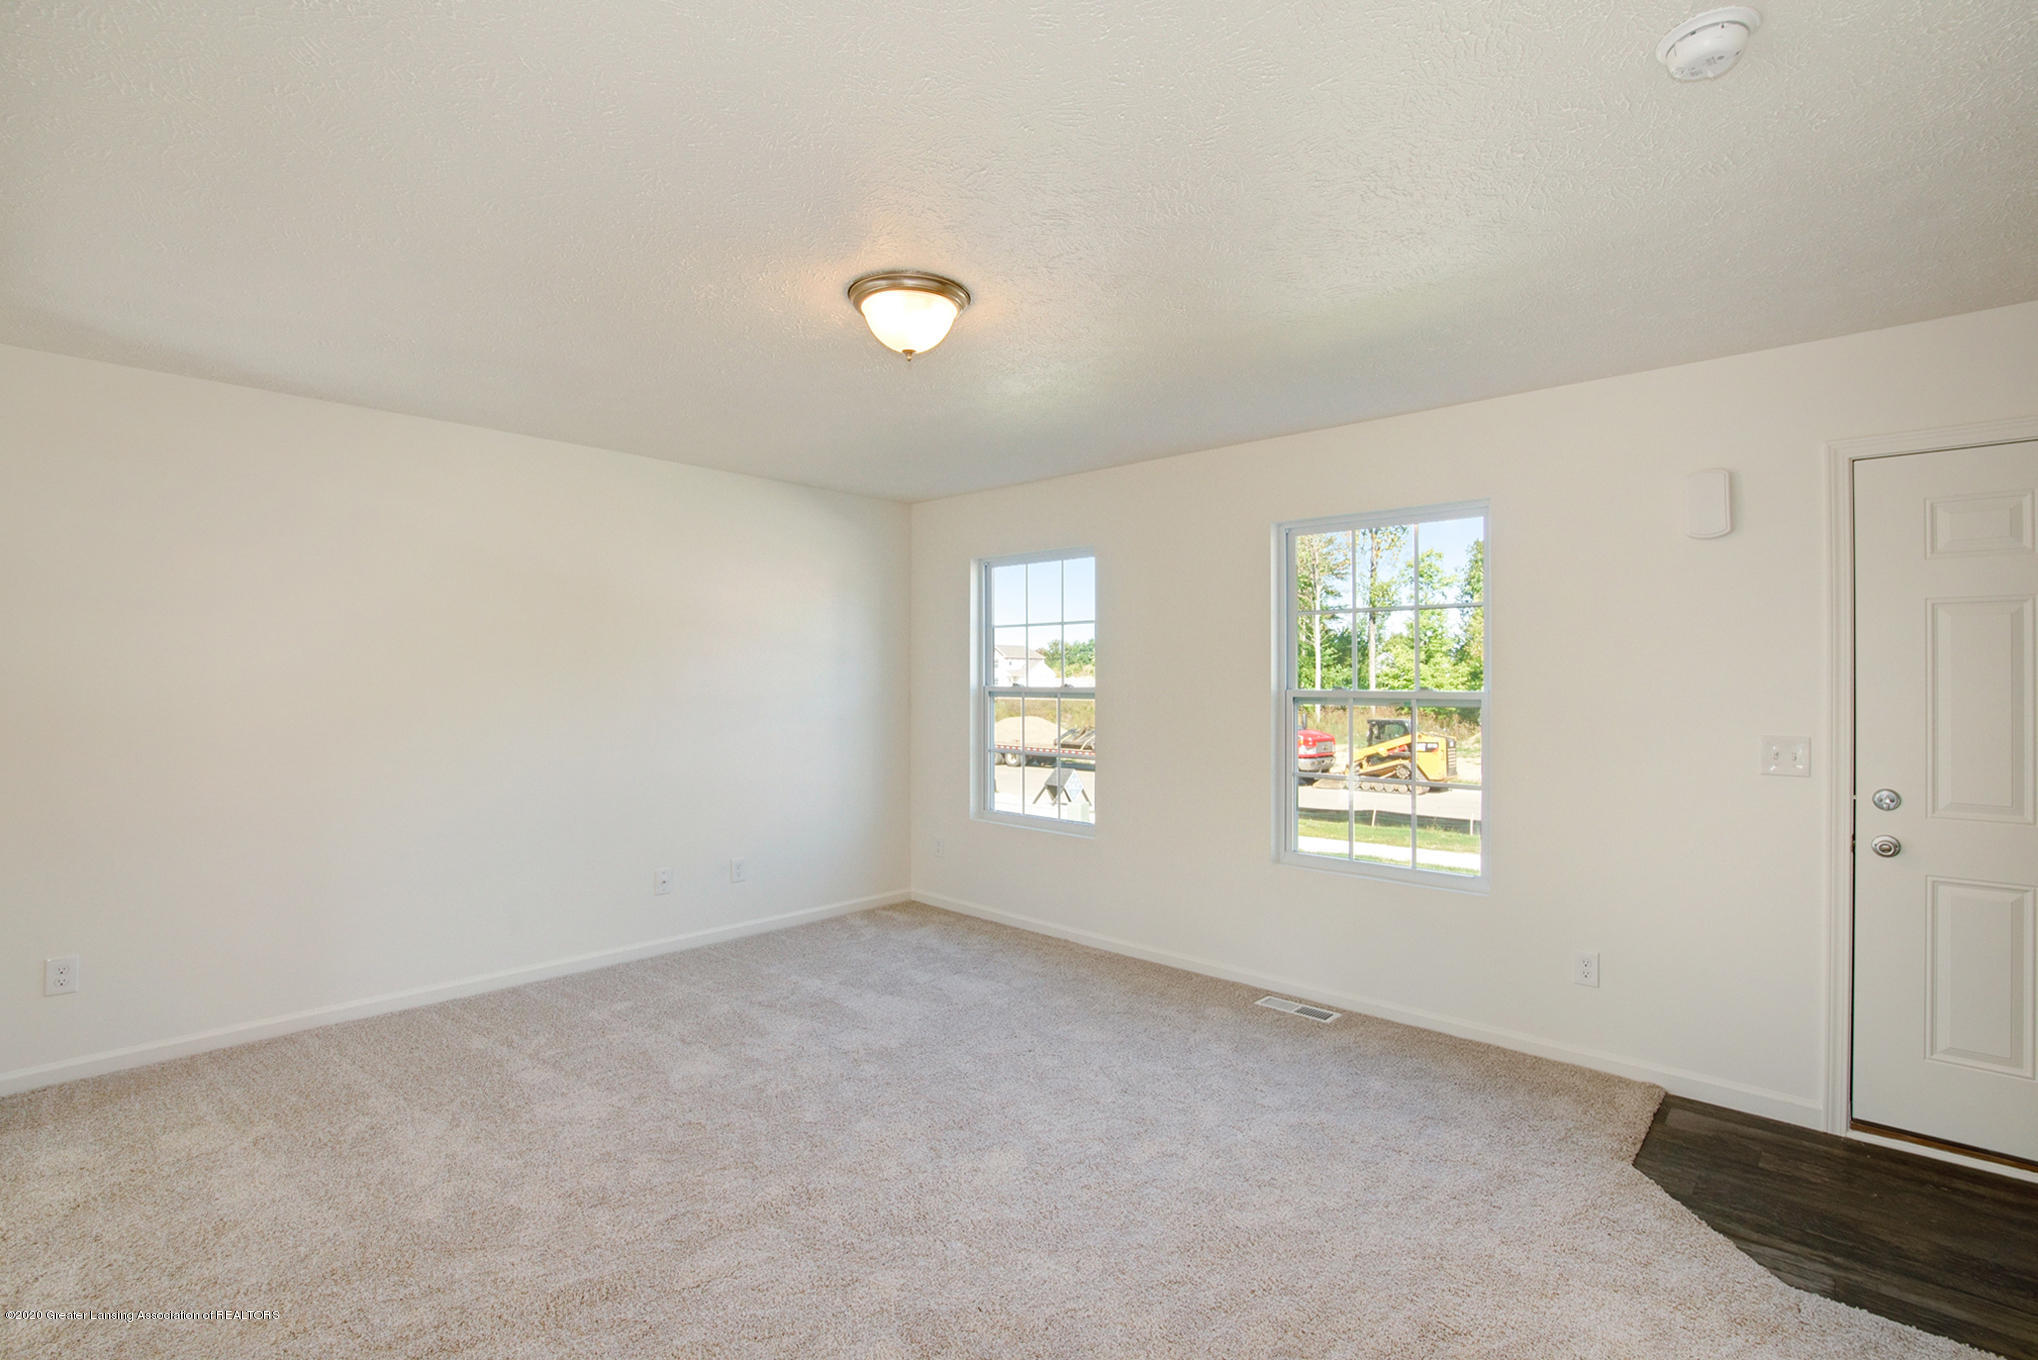 236 River Oaks Dr - OAK079-i1810-Great Room2 - 3